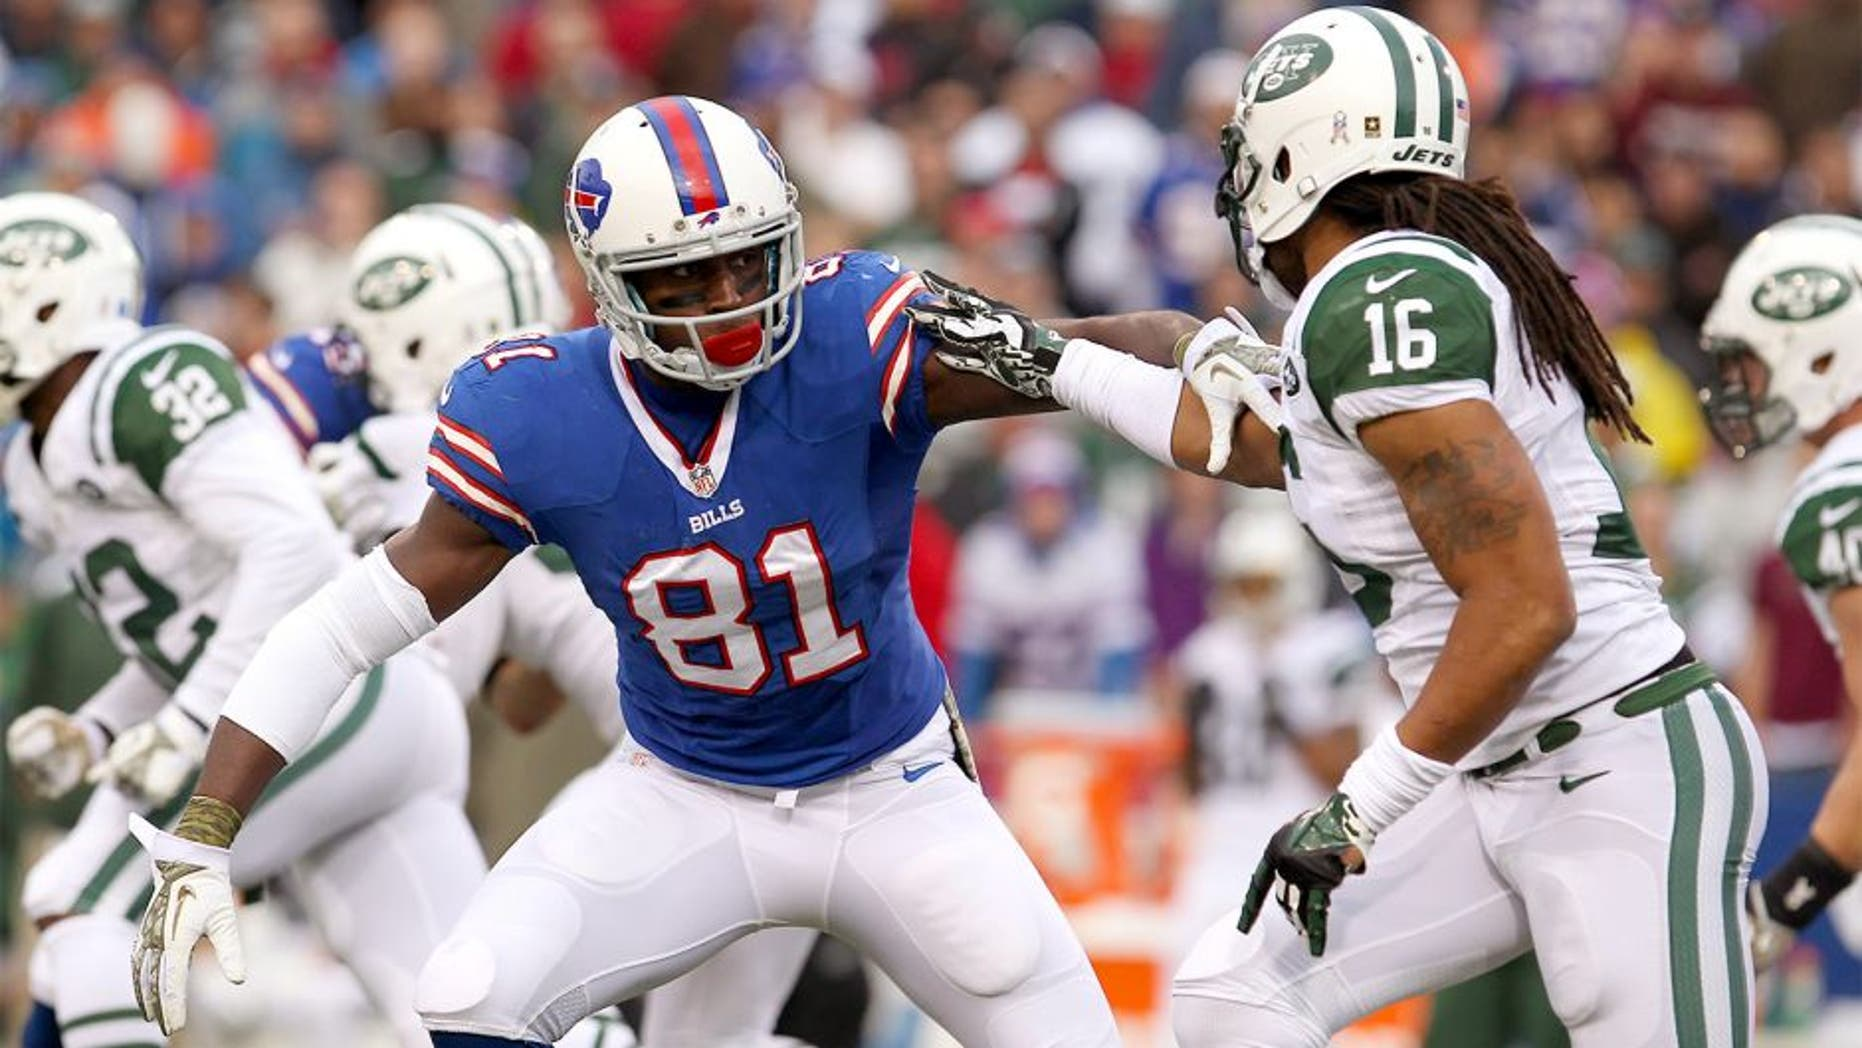 Nov 17, 2013; Orchard Park, NY, USA; Buffalo Bills wide receiver Marcus Easley (81) blocks New York Jets wide receiver Josh Cribbs (16) during the second half at Ralph Wilson Stadium. Bills beat the Jets 37 to 14. Mandatory Credit: Timothy T. Ludwig-USA TODAY Sports